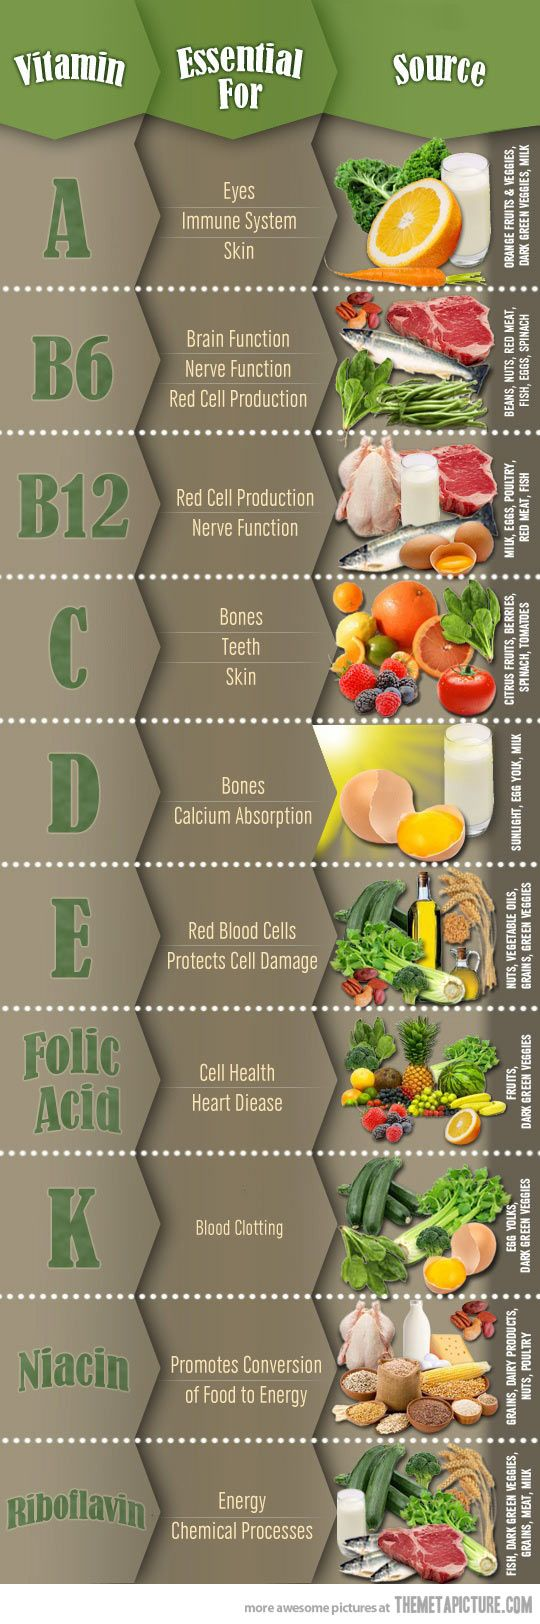 How vitamins help our health and where to get them